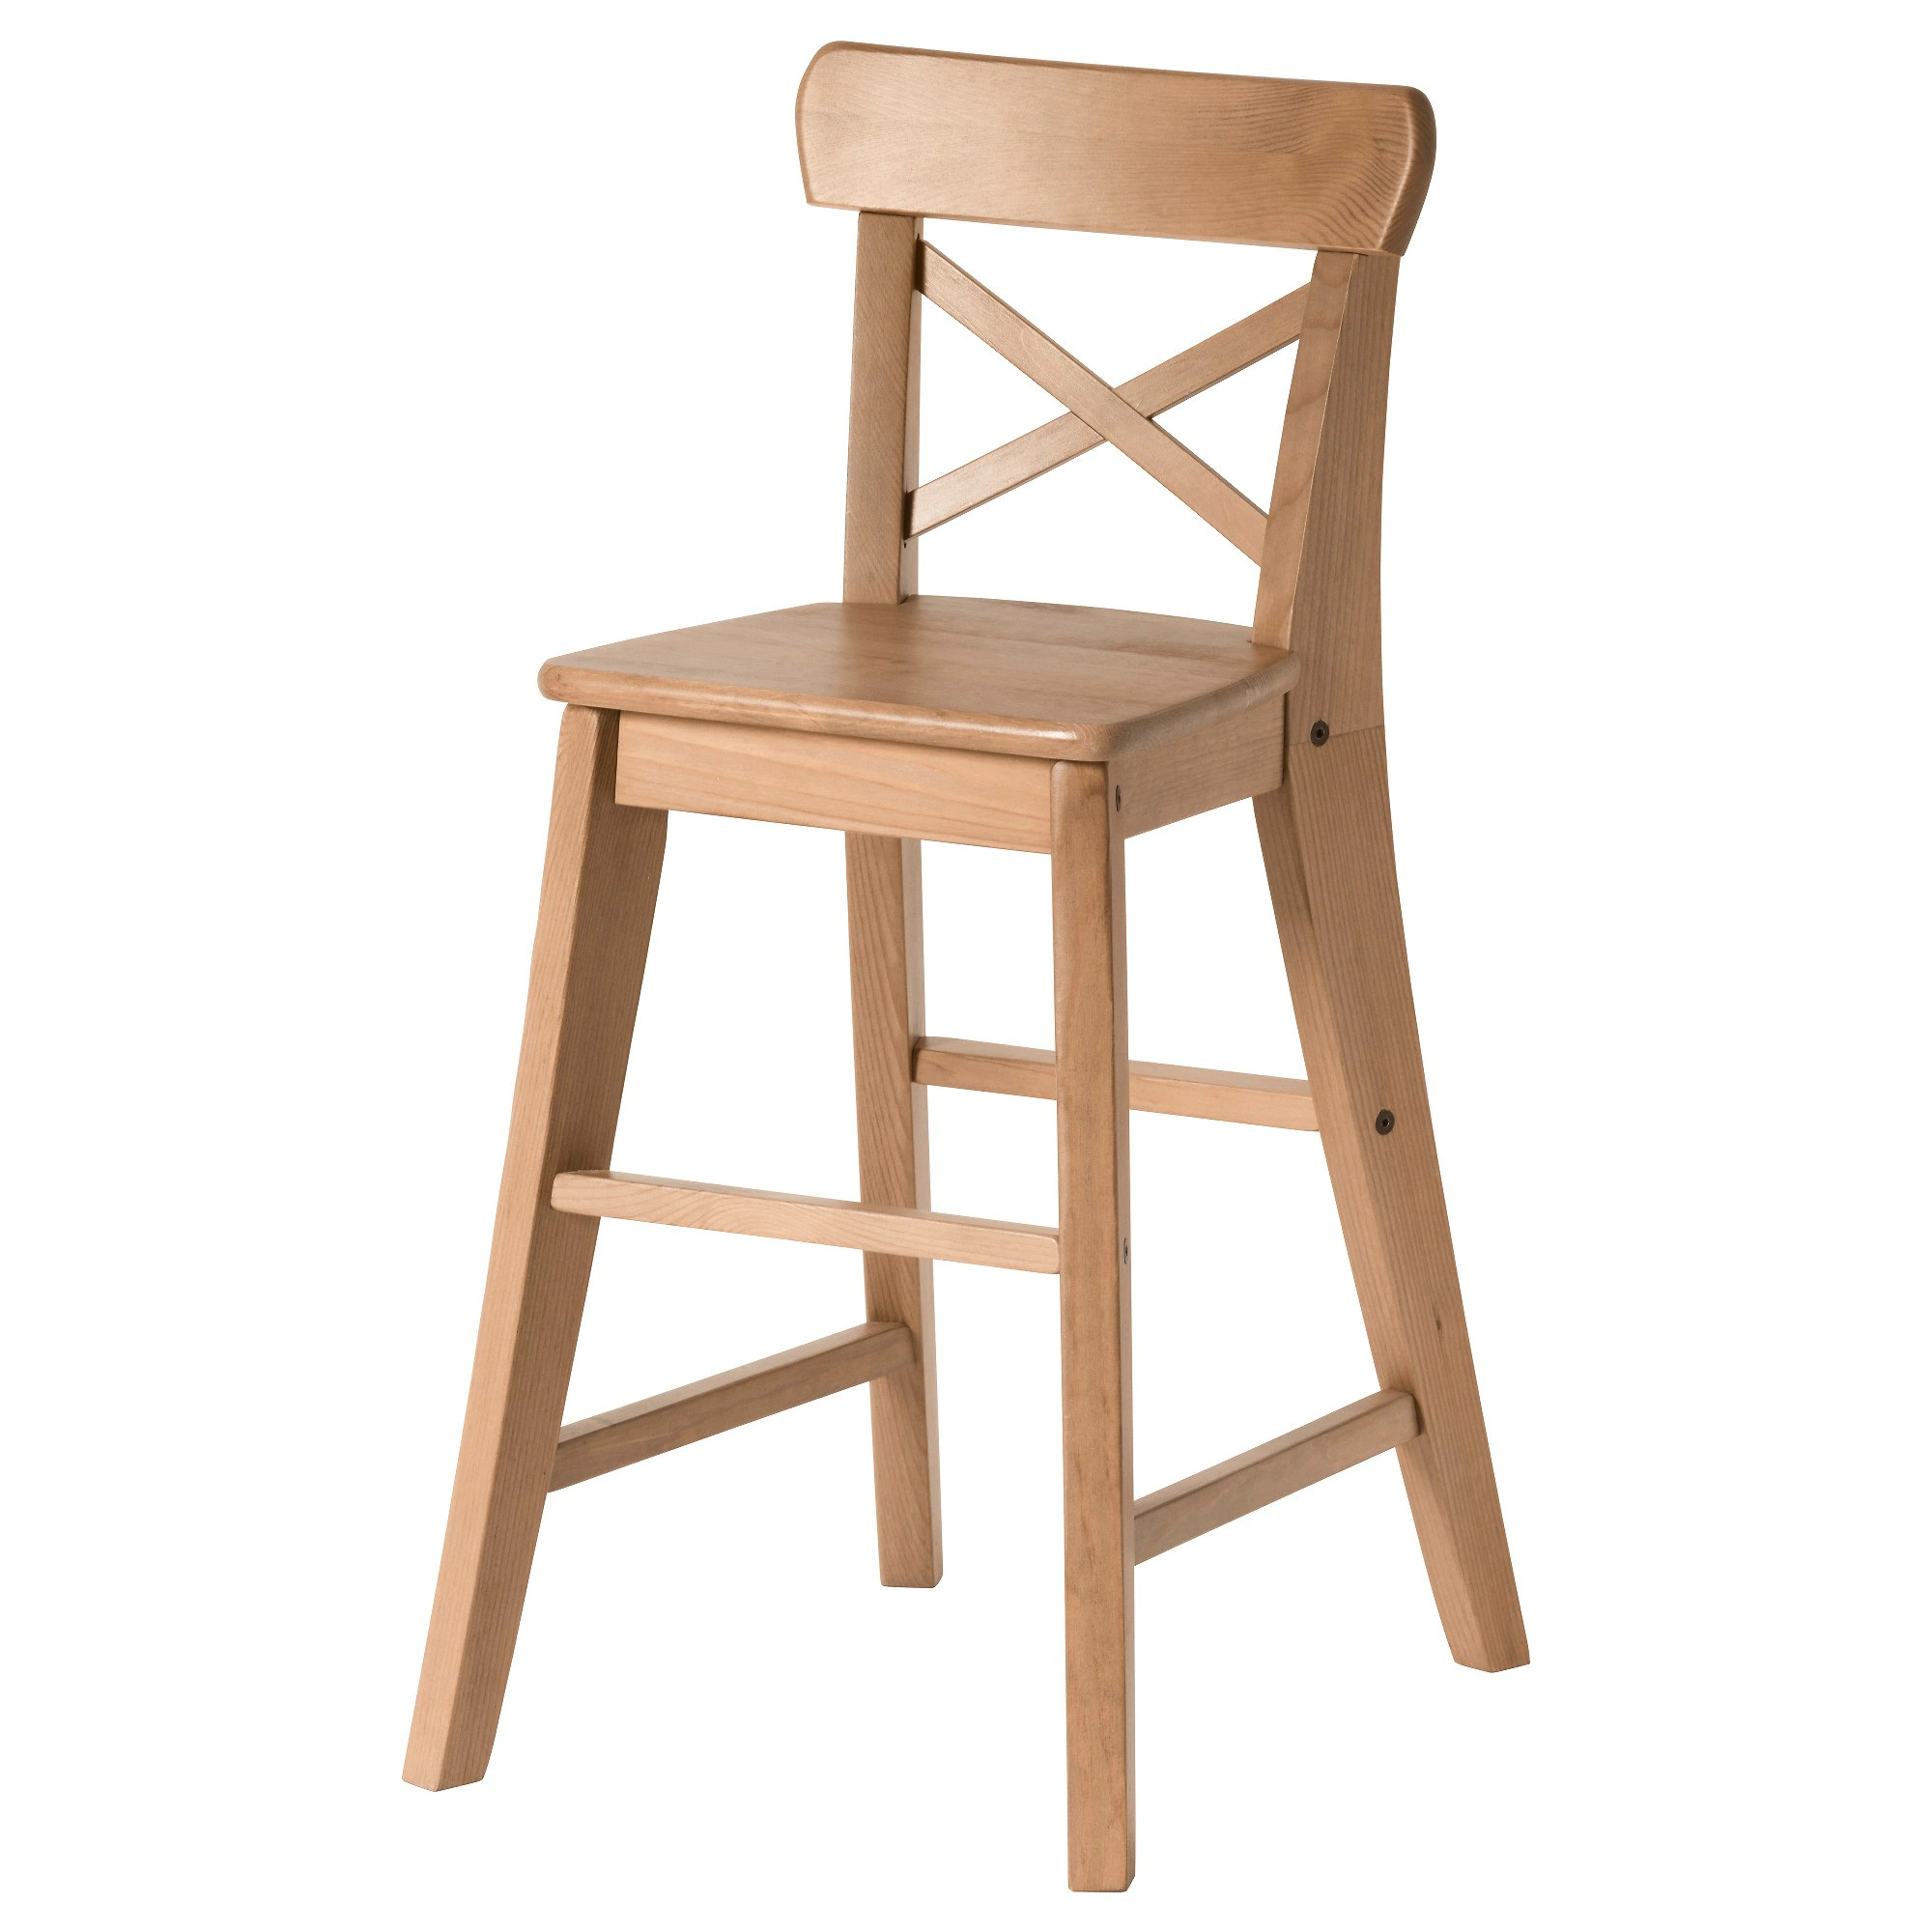 Sedia Junior Ikea Ingolf Junior Chair Antique Stain